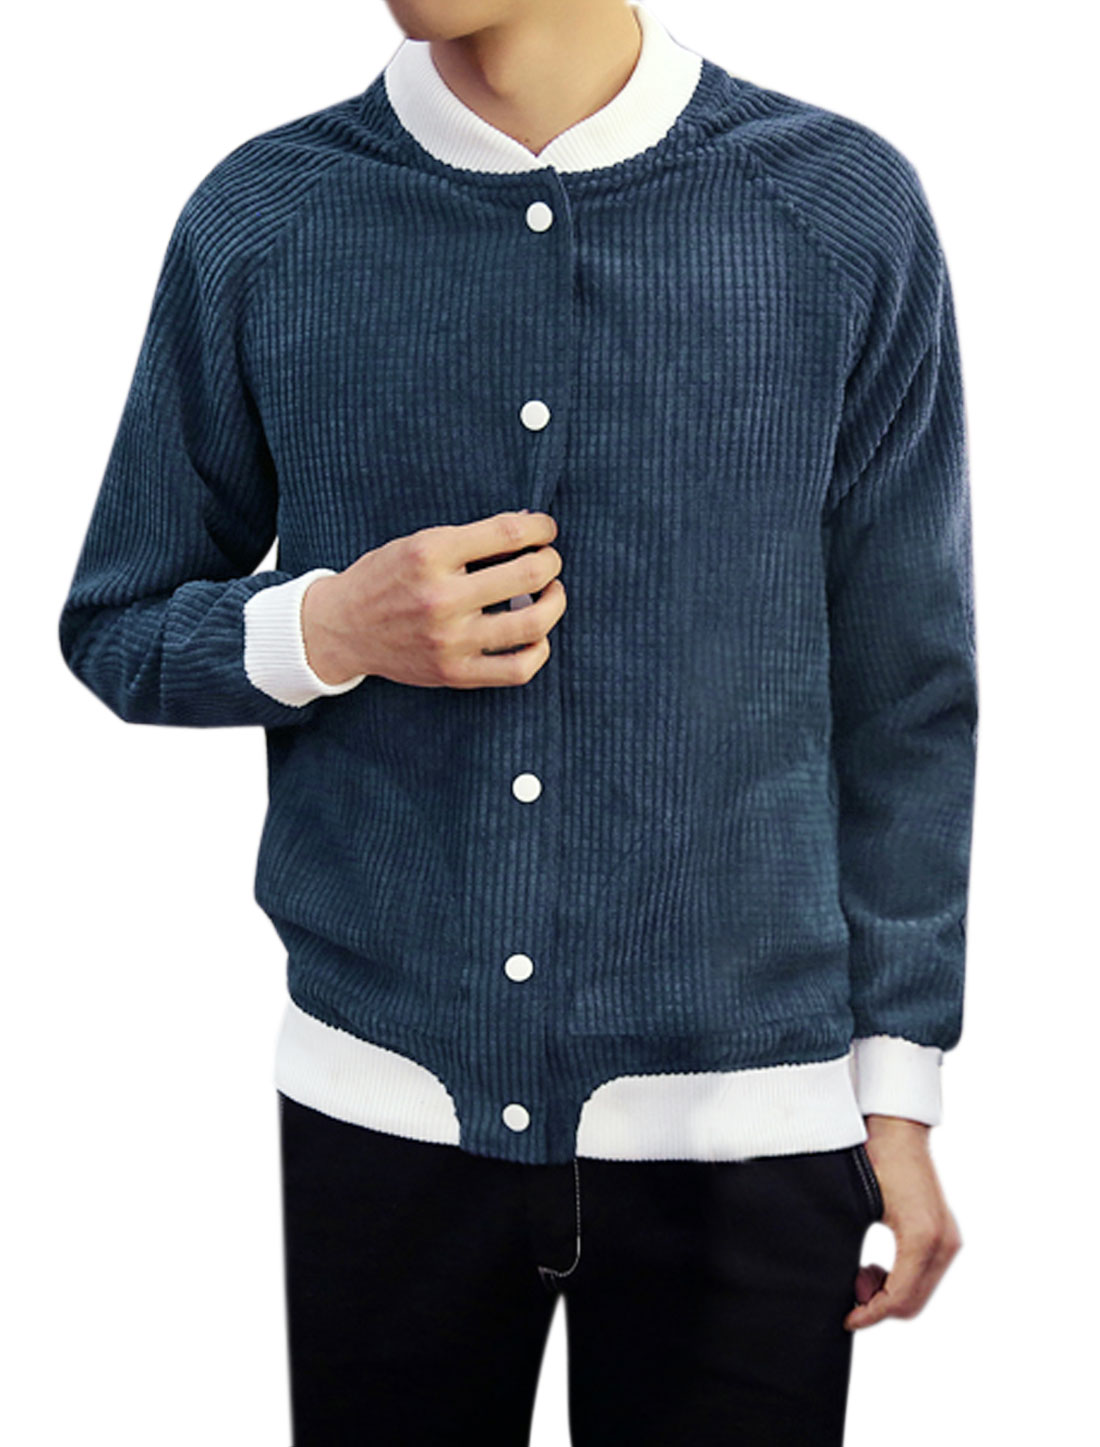 Men Snap Buttons Closure Contrast Color Textured Jacket Blue M